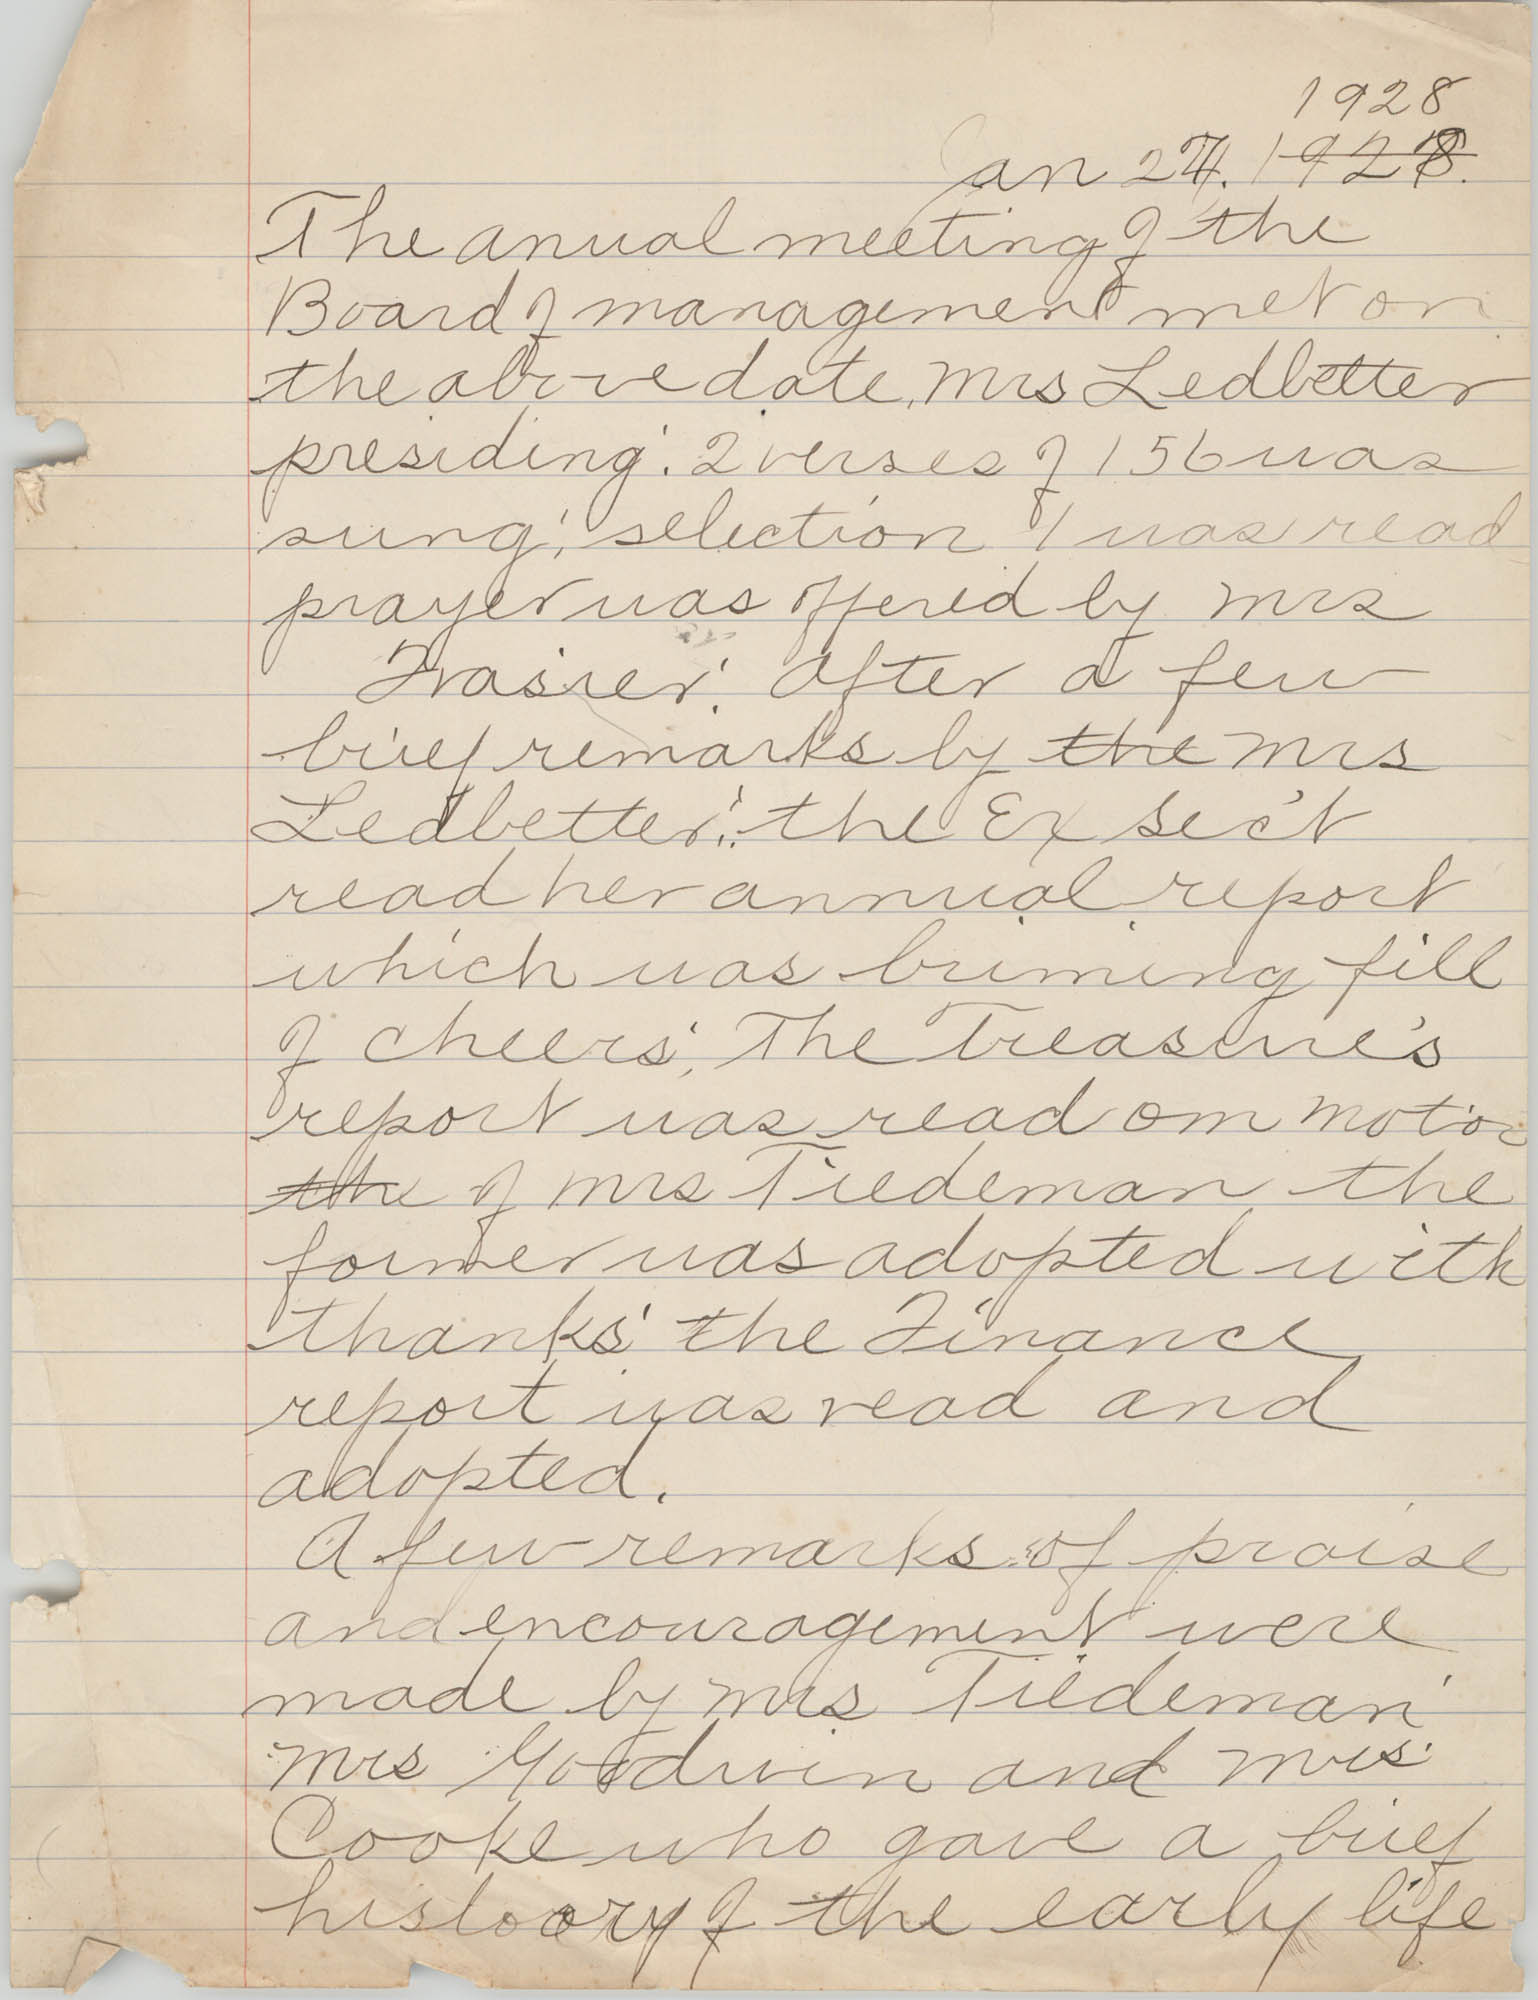 Minutes to the Board of Management, Coming Street Y.W.C.A., January 27, 1928